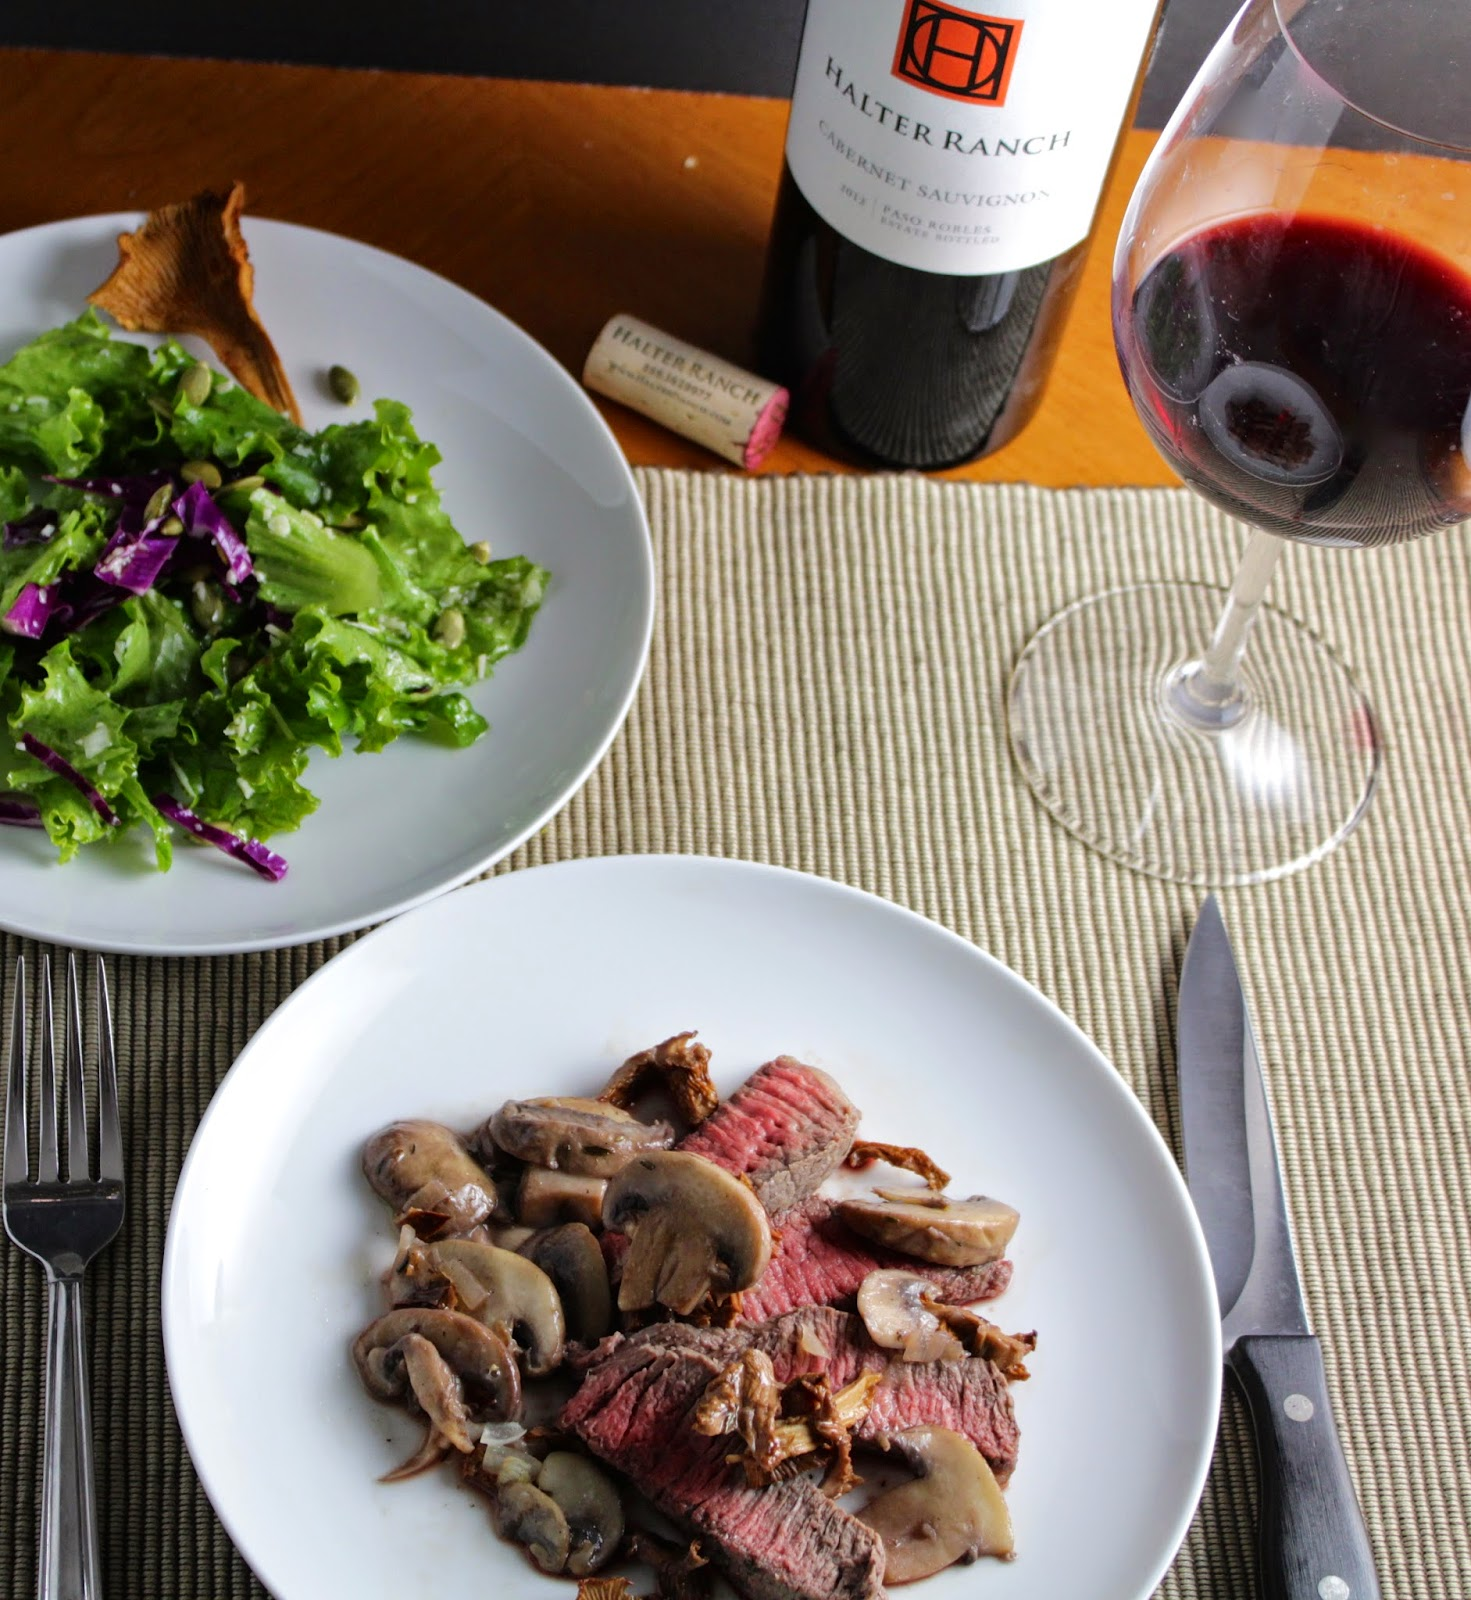 Roasted Sirloin Steak with Chanterelle Mushrooms and a Halter Ranch Cabernet. Cooking Chat recipe.